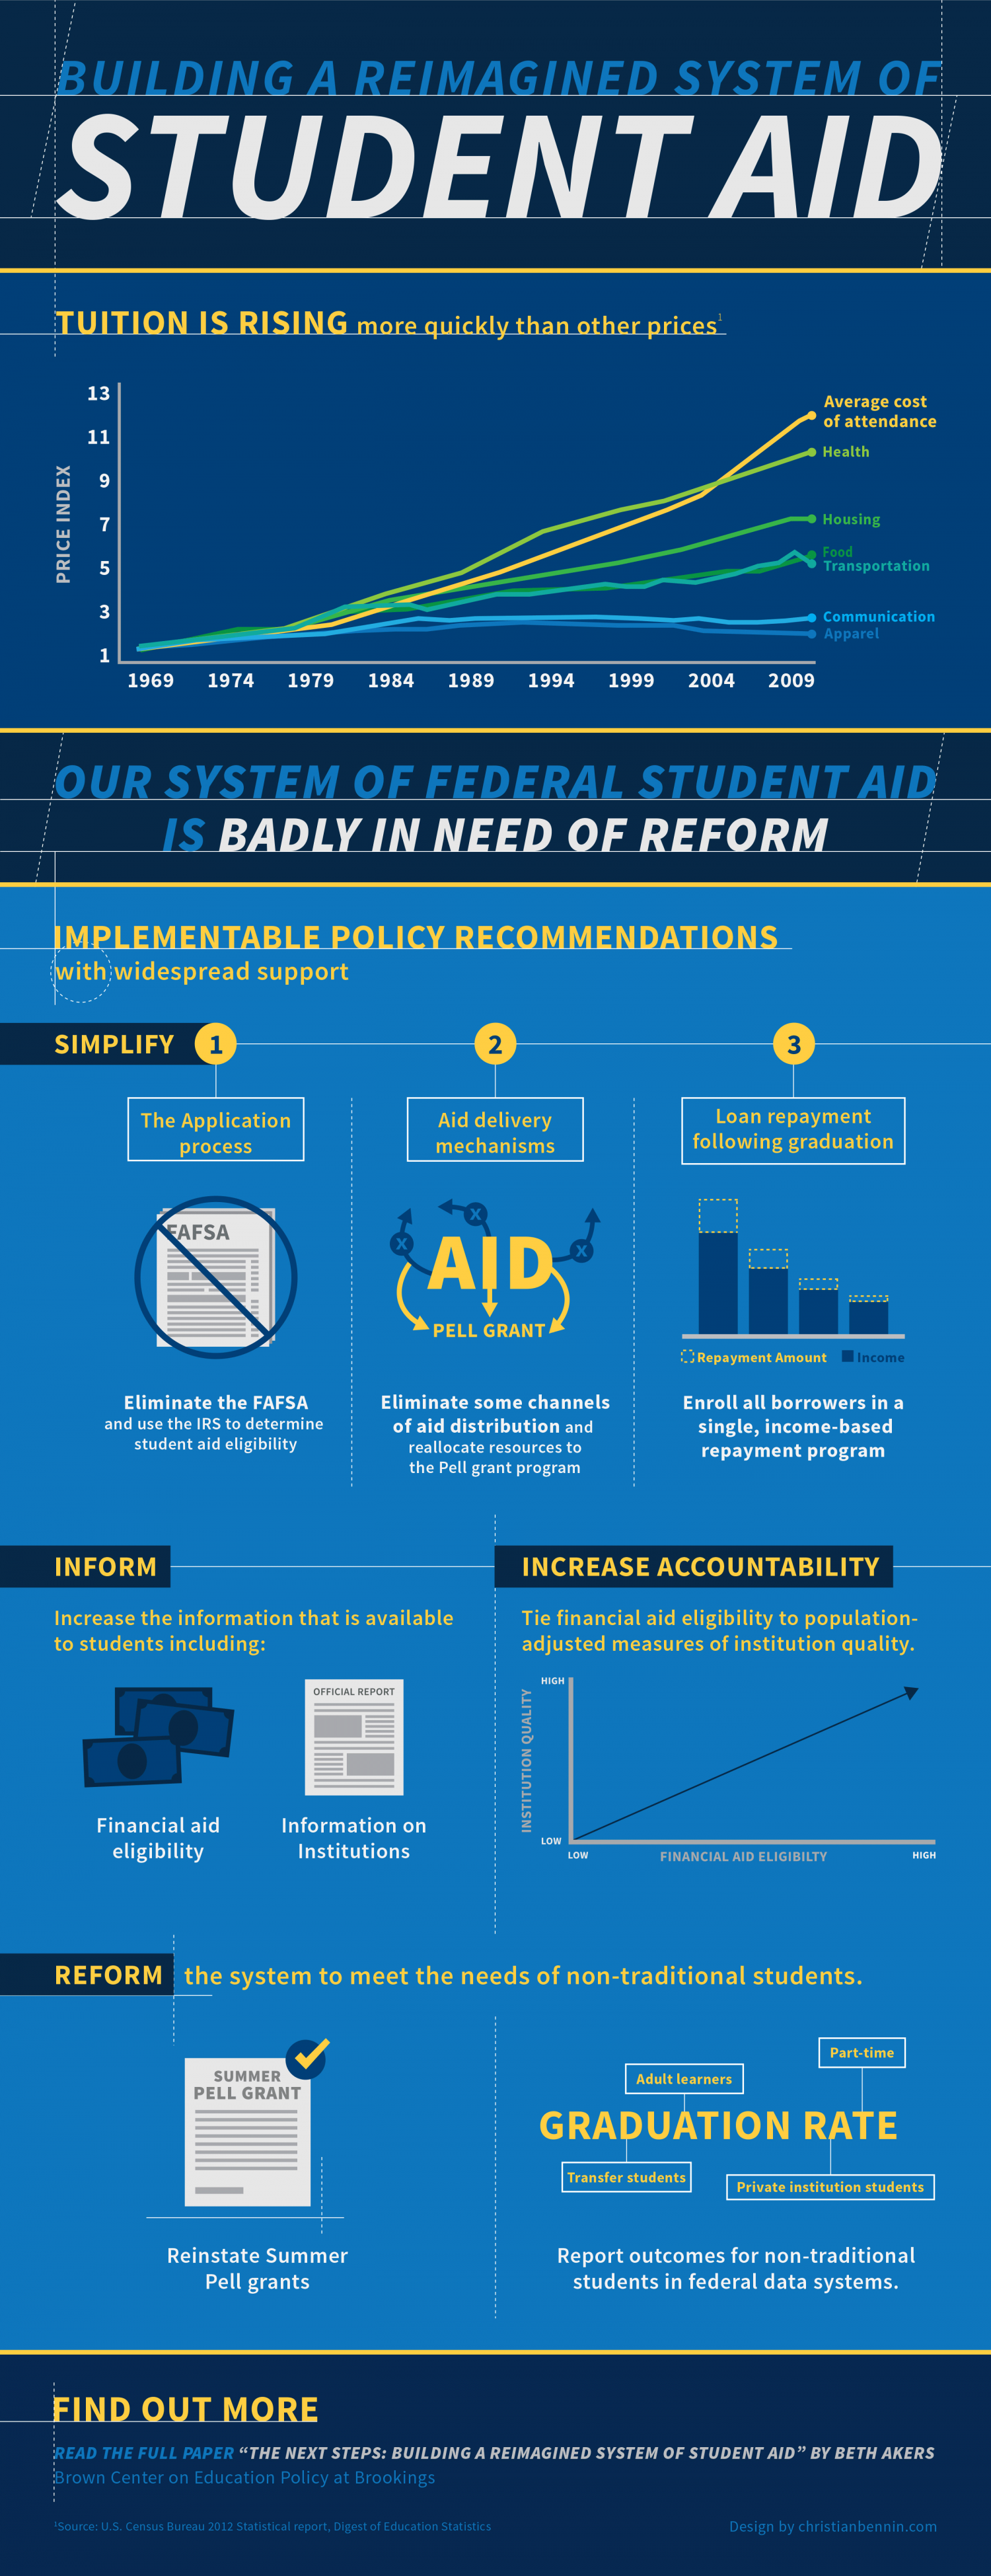 The Next Steps: Building a Reimagined System of Student Aid Infographic